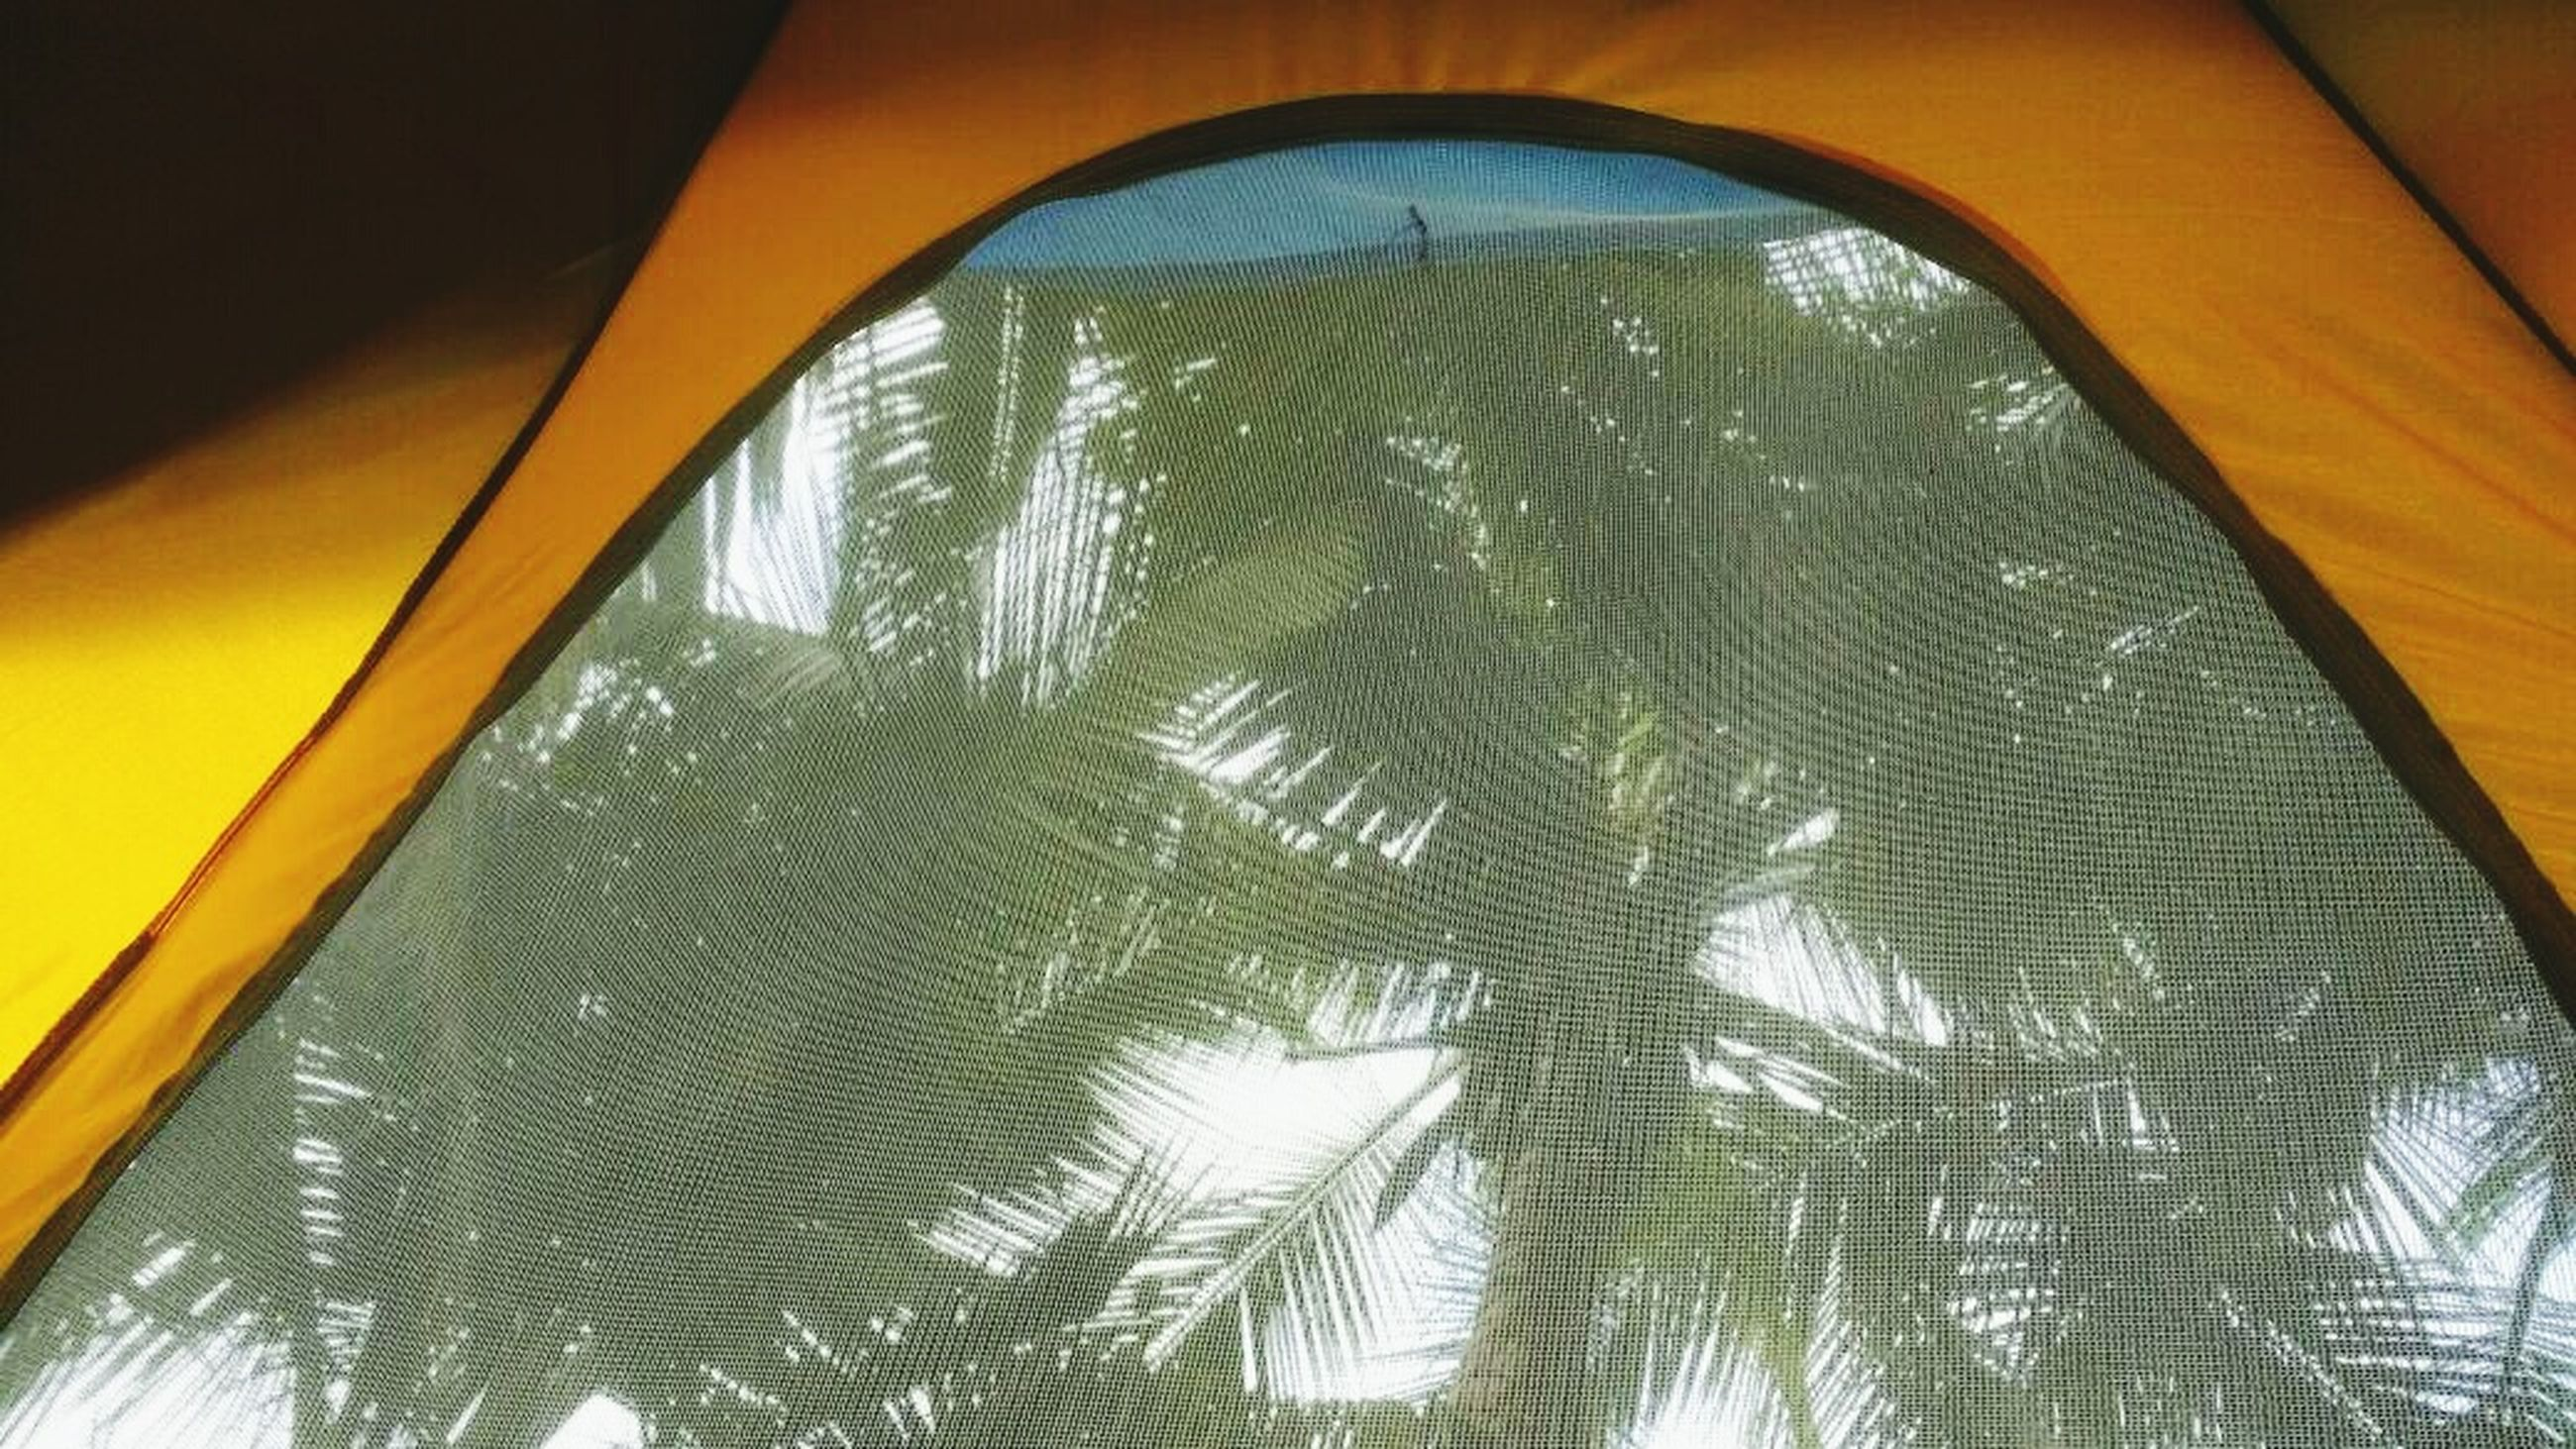 indoors, no people, low angle view, close-up, tree, day